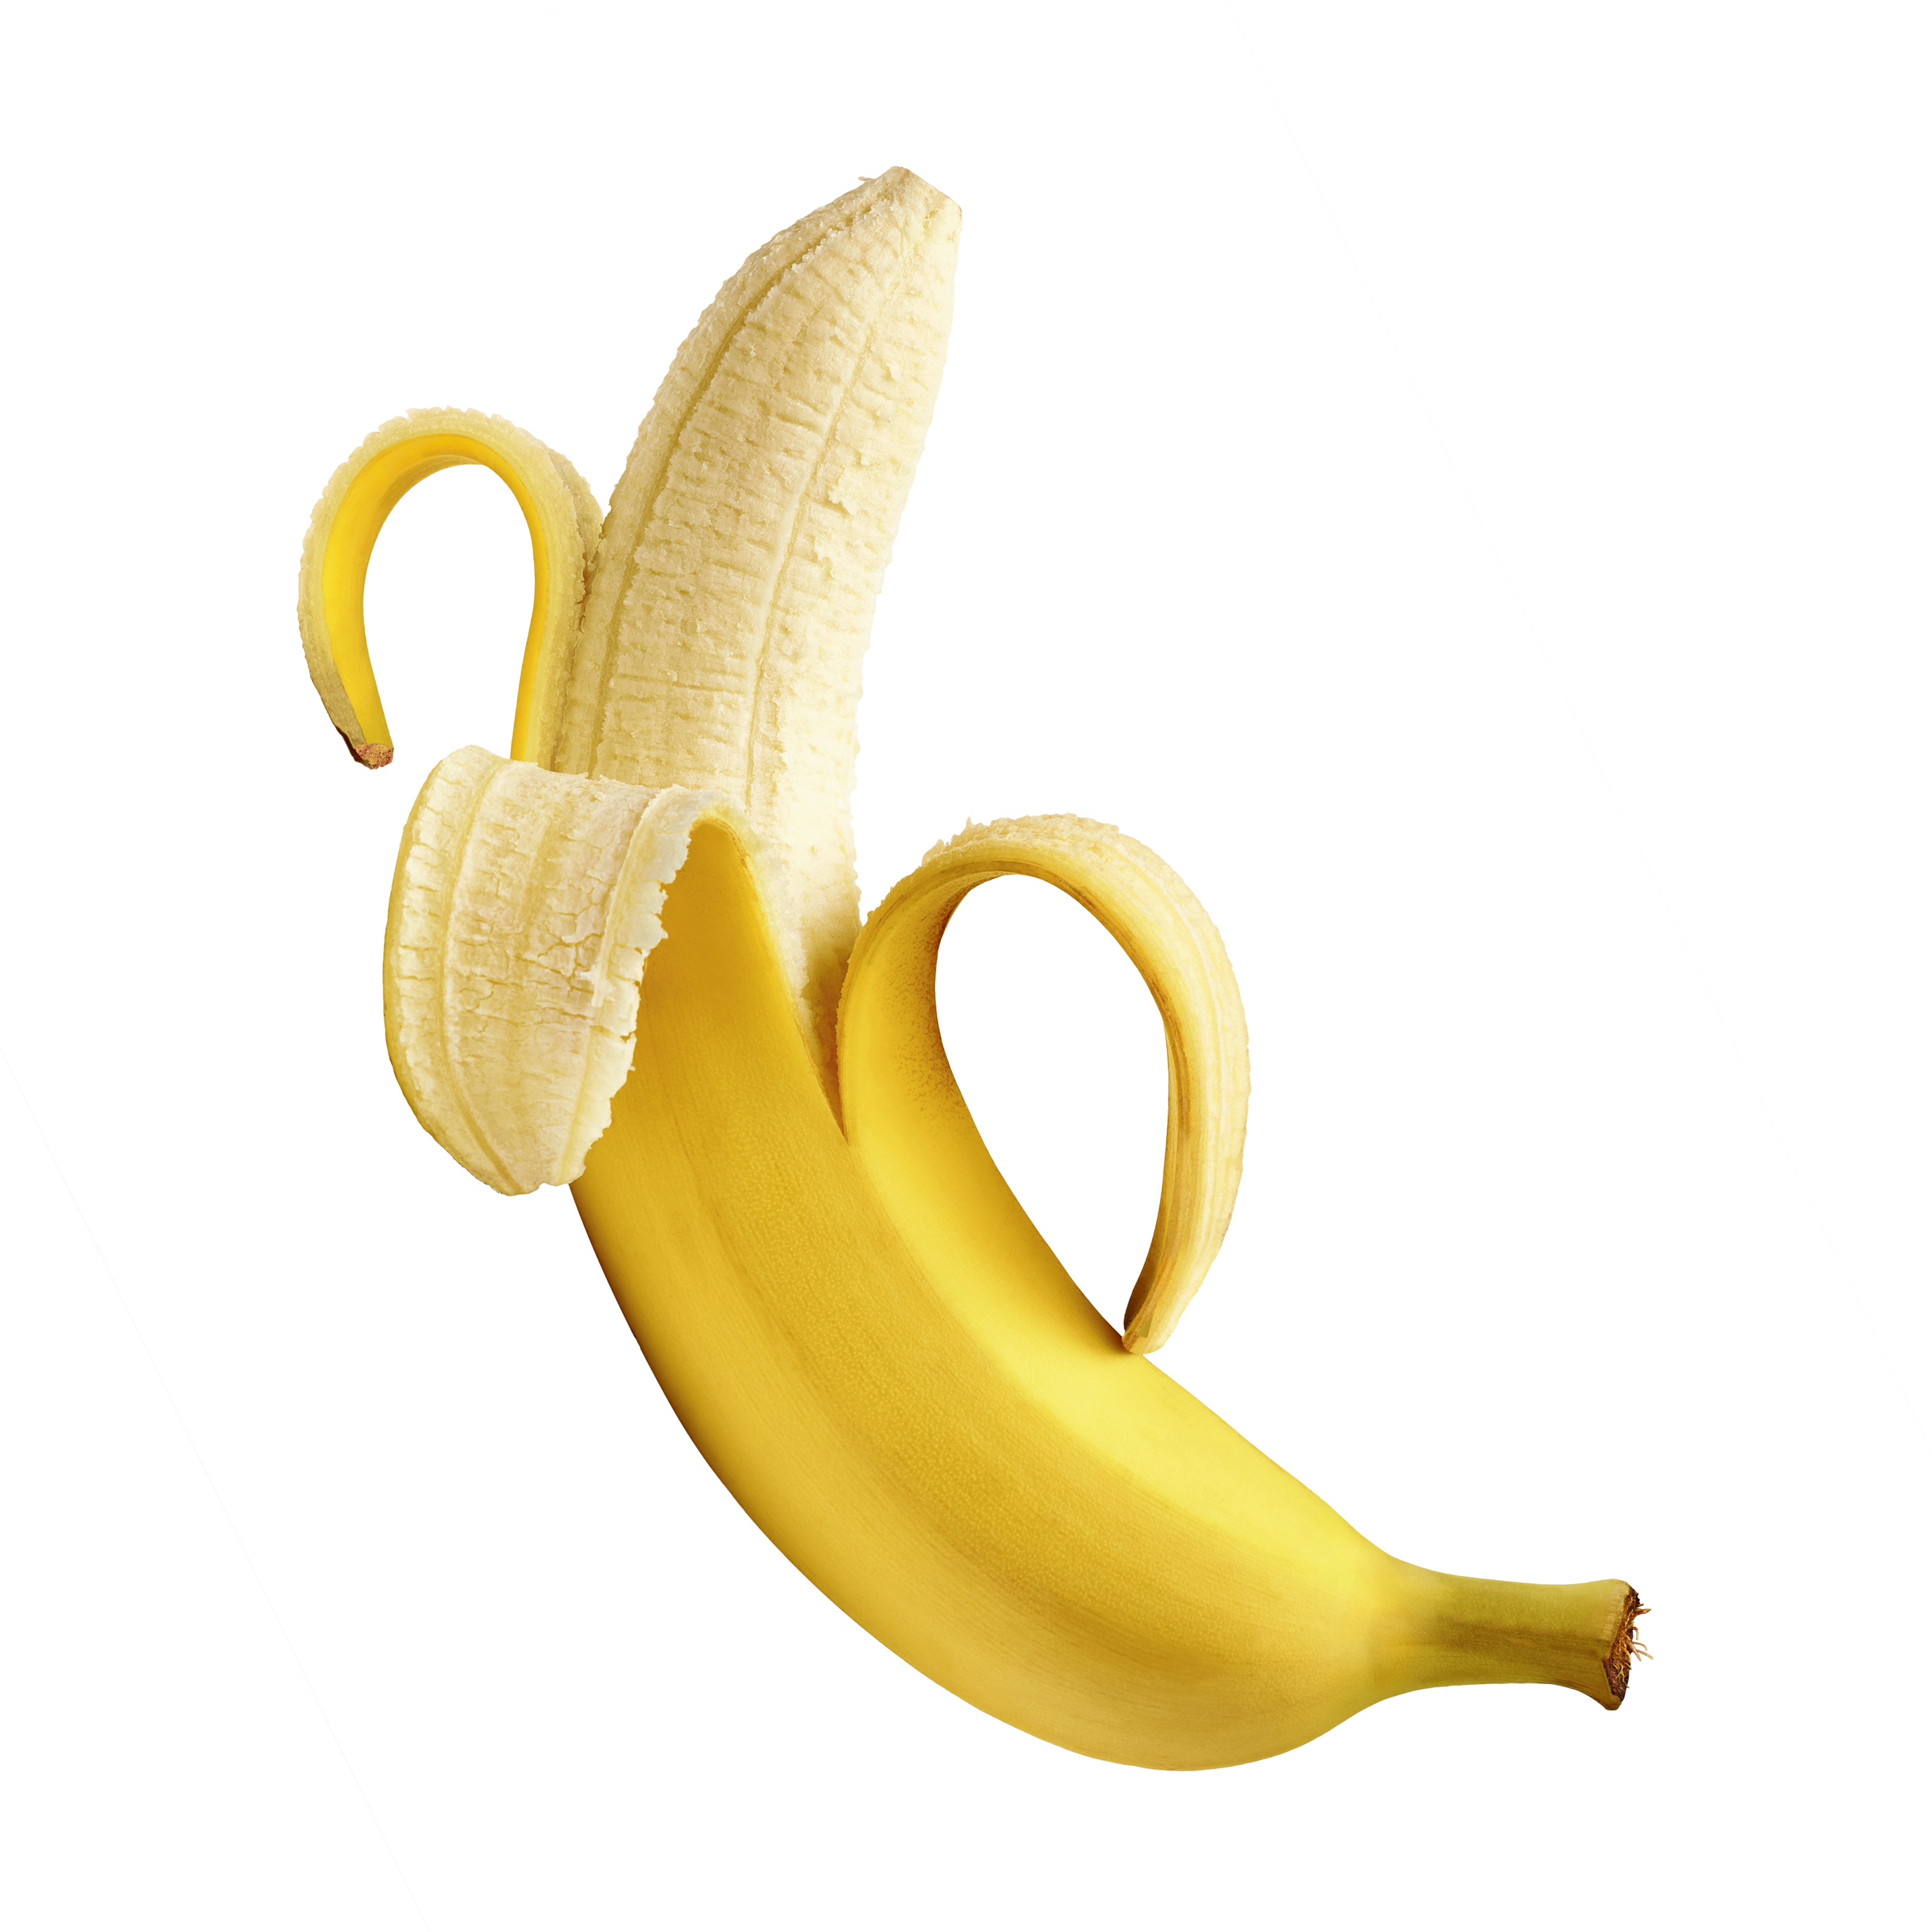 Peeled-Banana.jpg